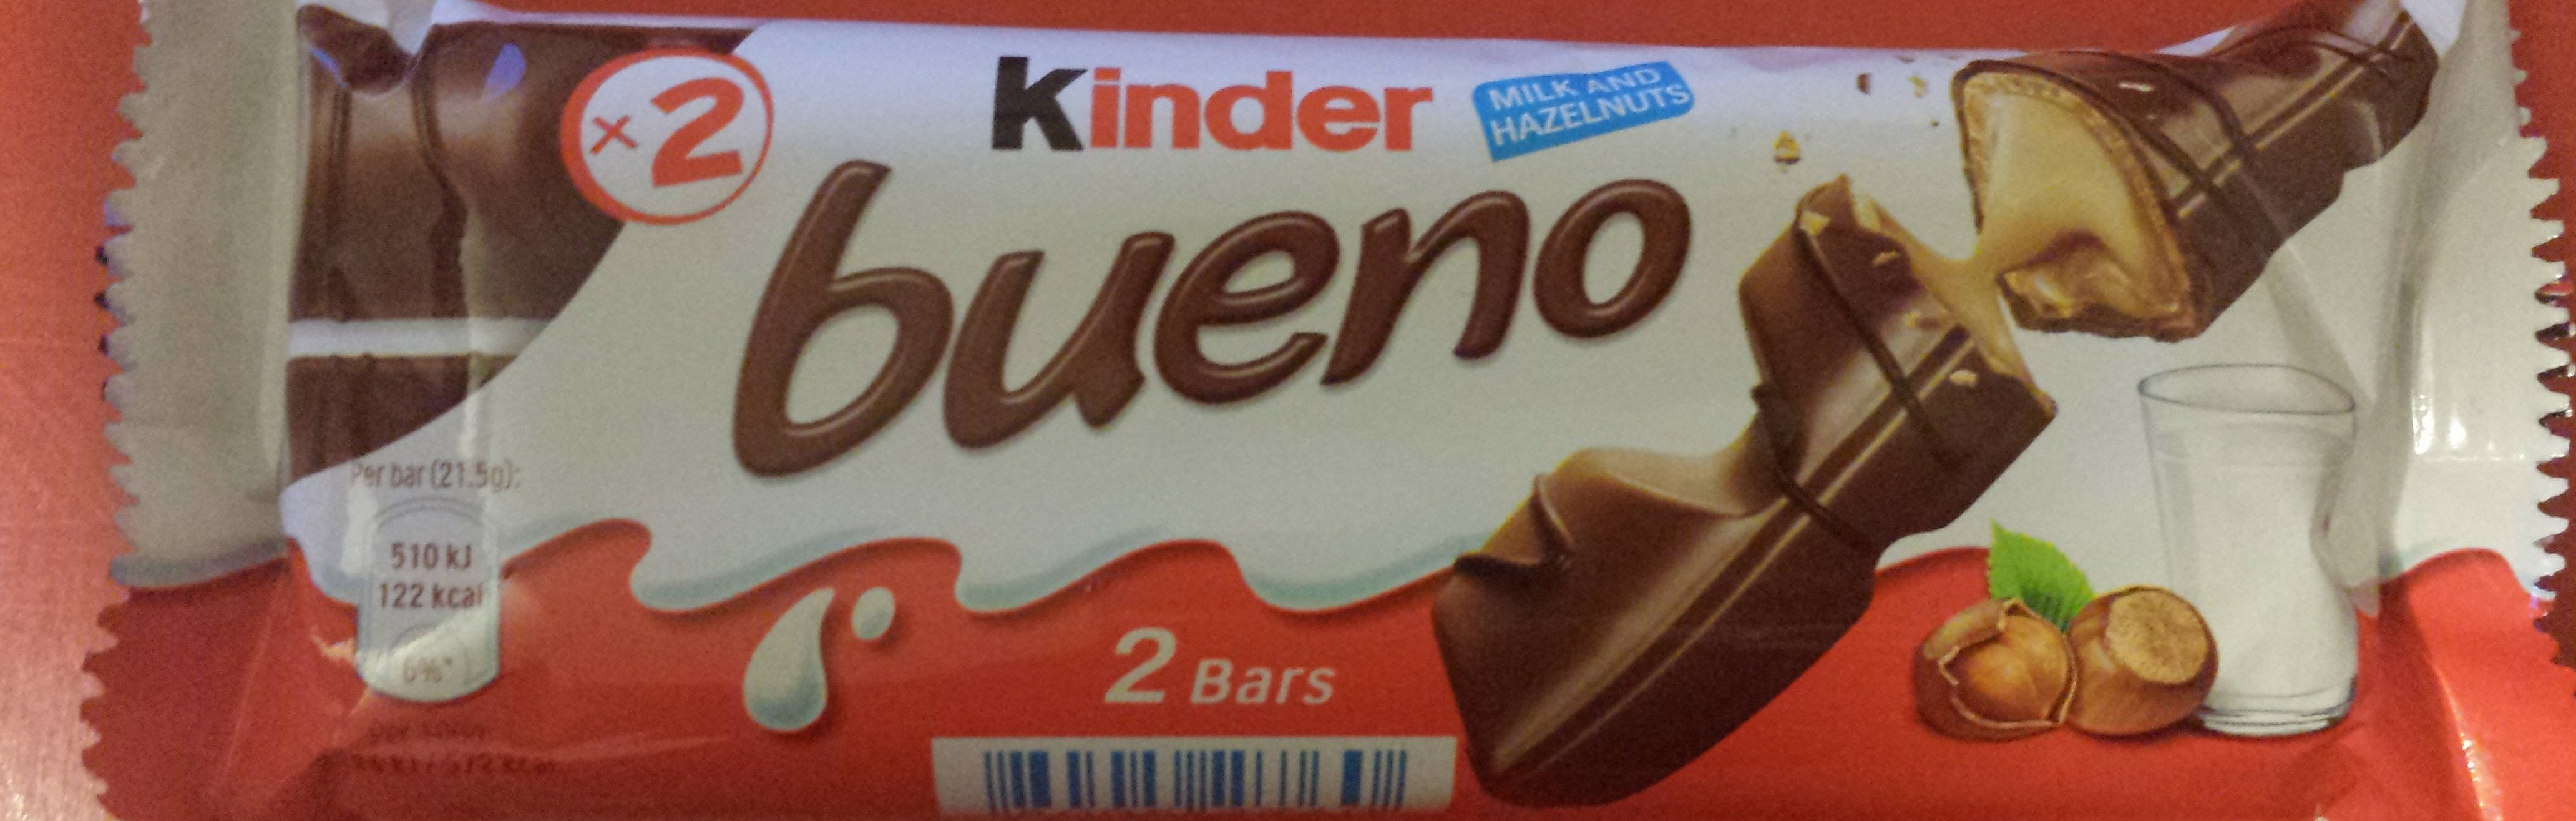 Kinder Bueno - Product - en